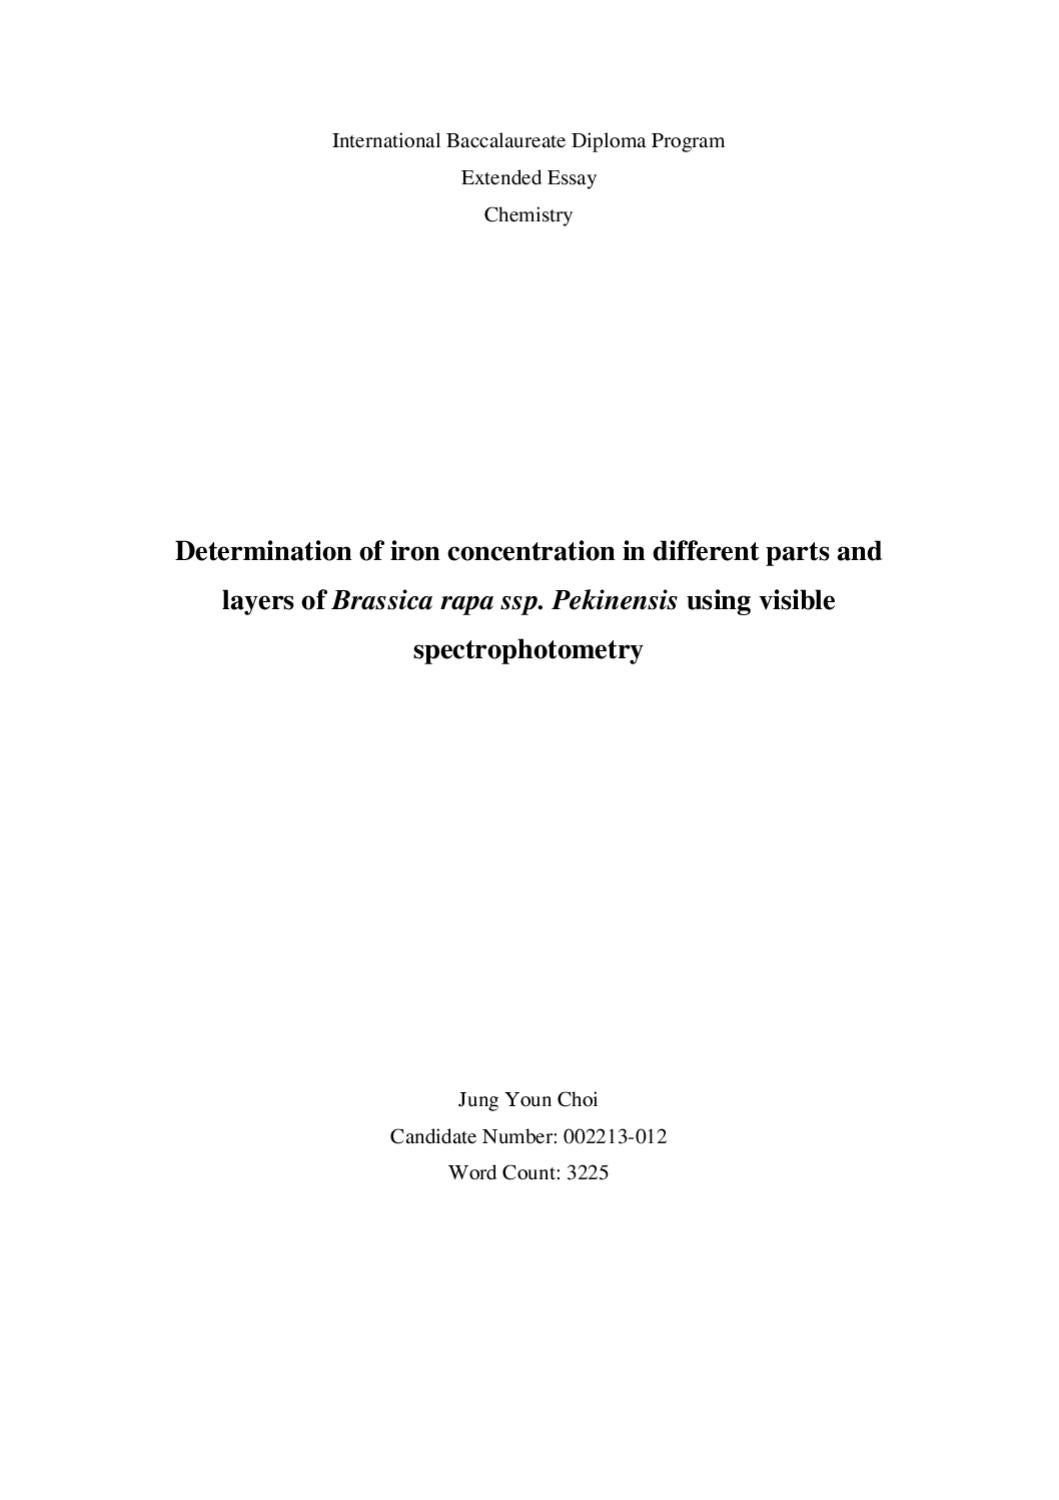 ib ee on spectrophotometric determination of iron in cabbage by ib ee on spectrophotometric determination of iron in cabbage by lawrence kok issuu